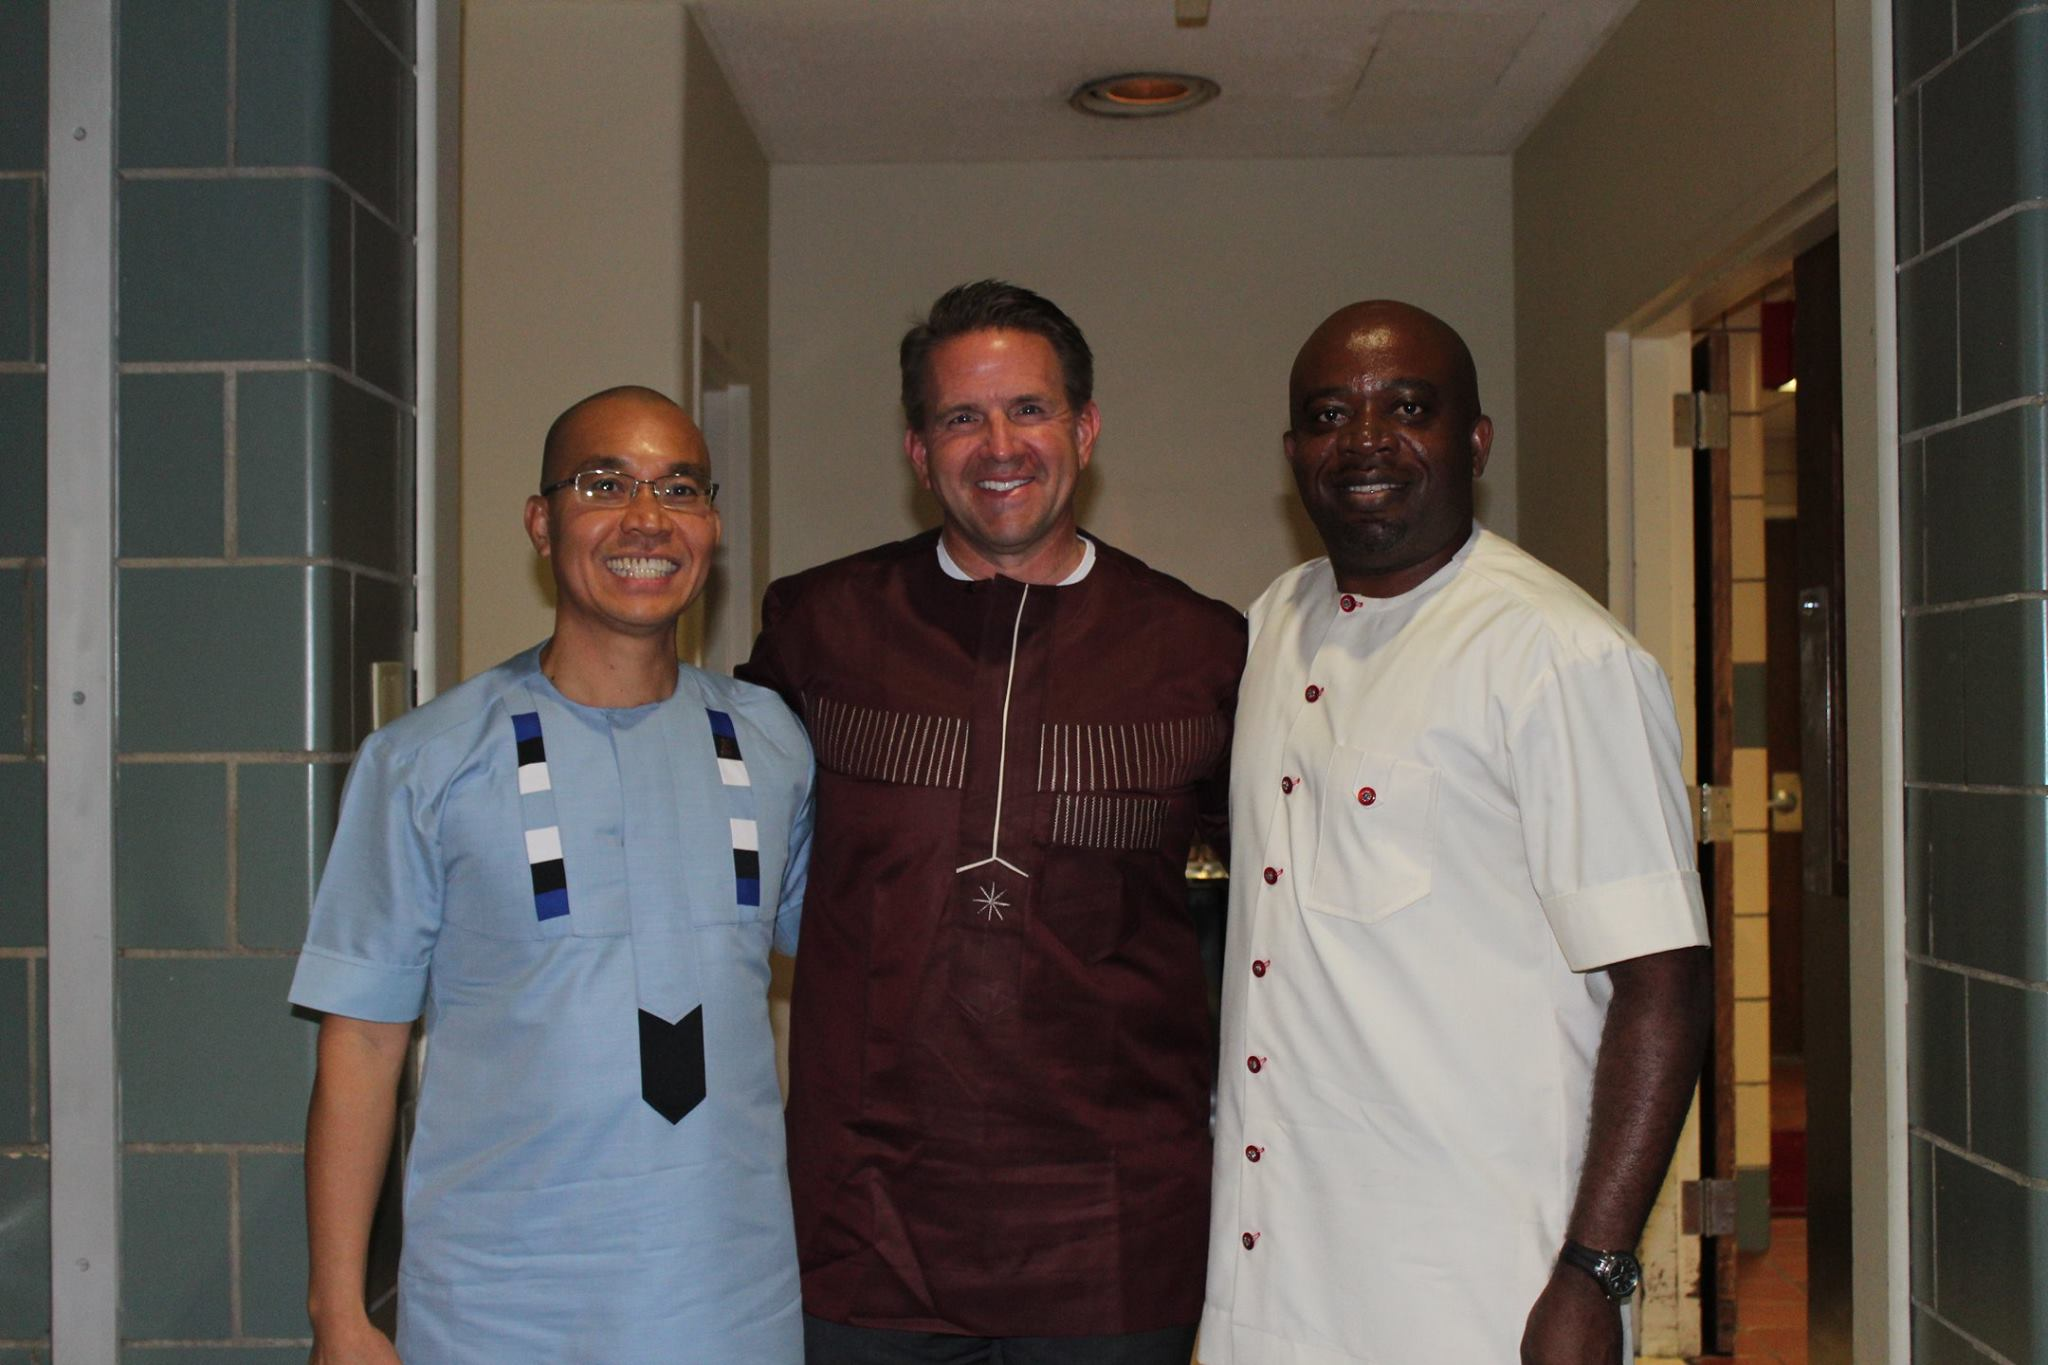 With President Michael Benson and Dr. Ogechi Anyanwu, Director of African/African American Studies Program